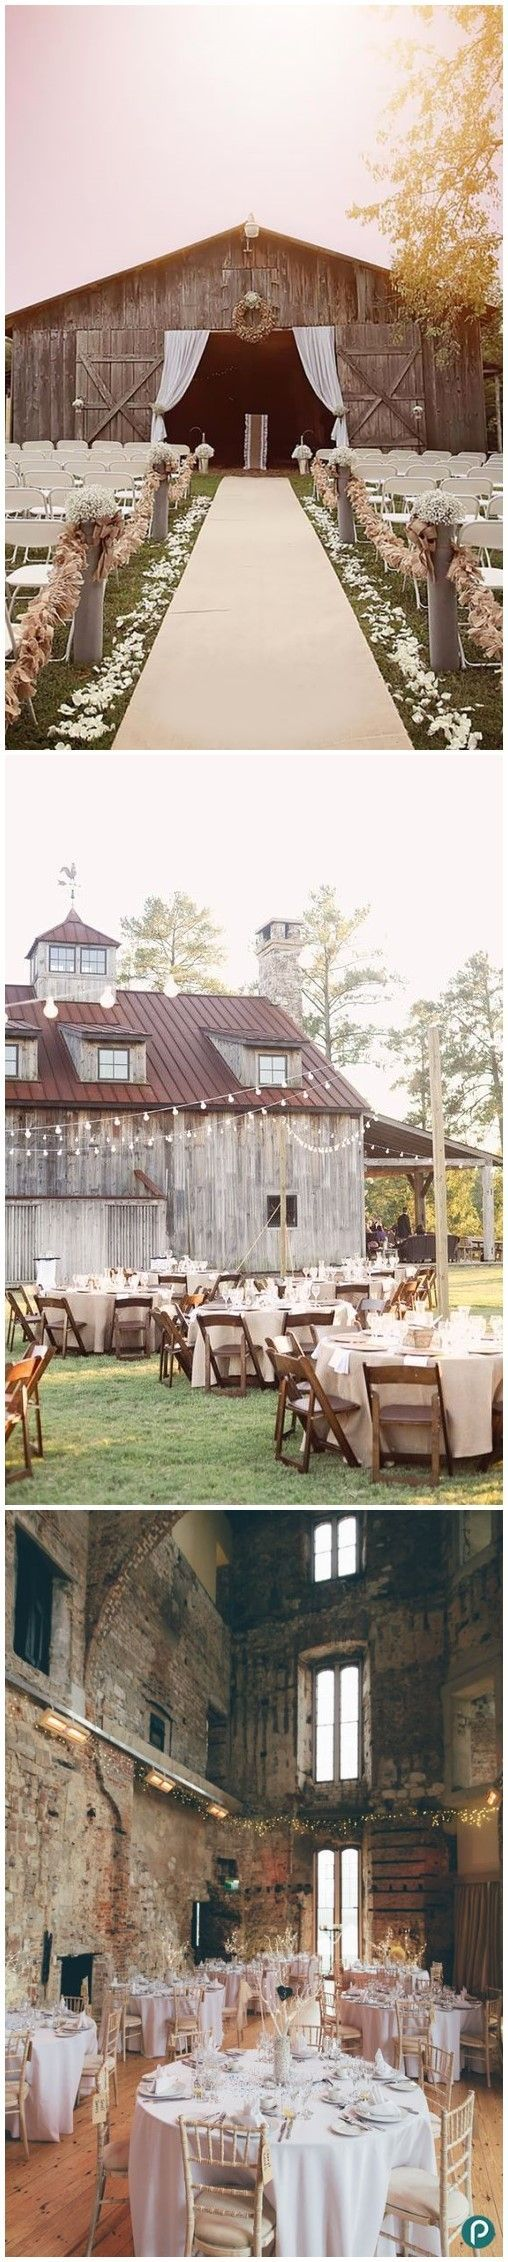 Beautiful rustic wedding set up! Great for either an indoor or outdoor wedding to celebrate your special day country style! #loverusticwedding